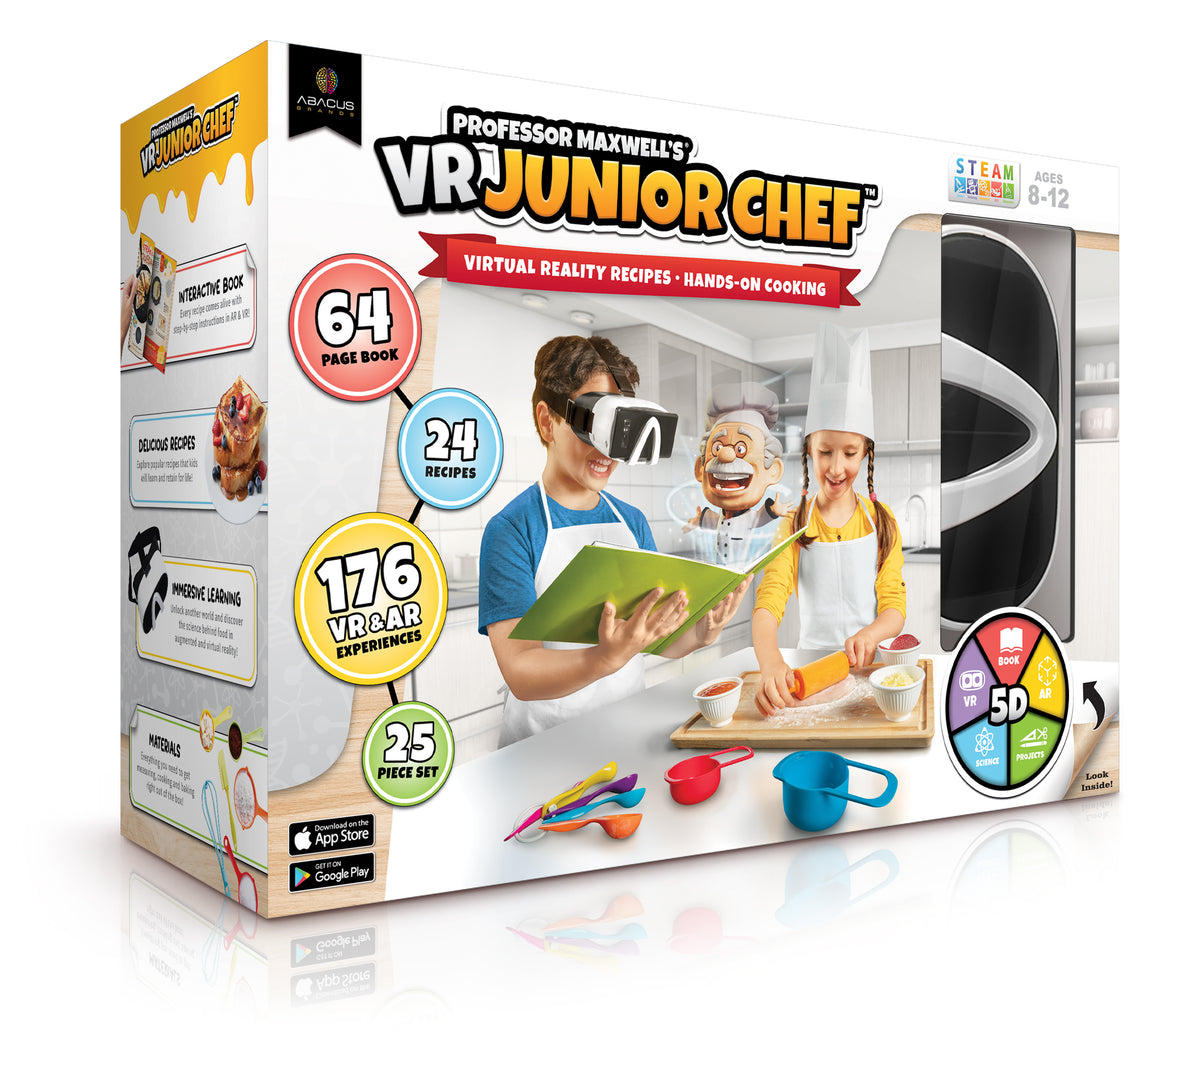 VR JUNIOR CHEF Professor Maxwell's Virtual Reality Cooking Kit